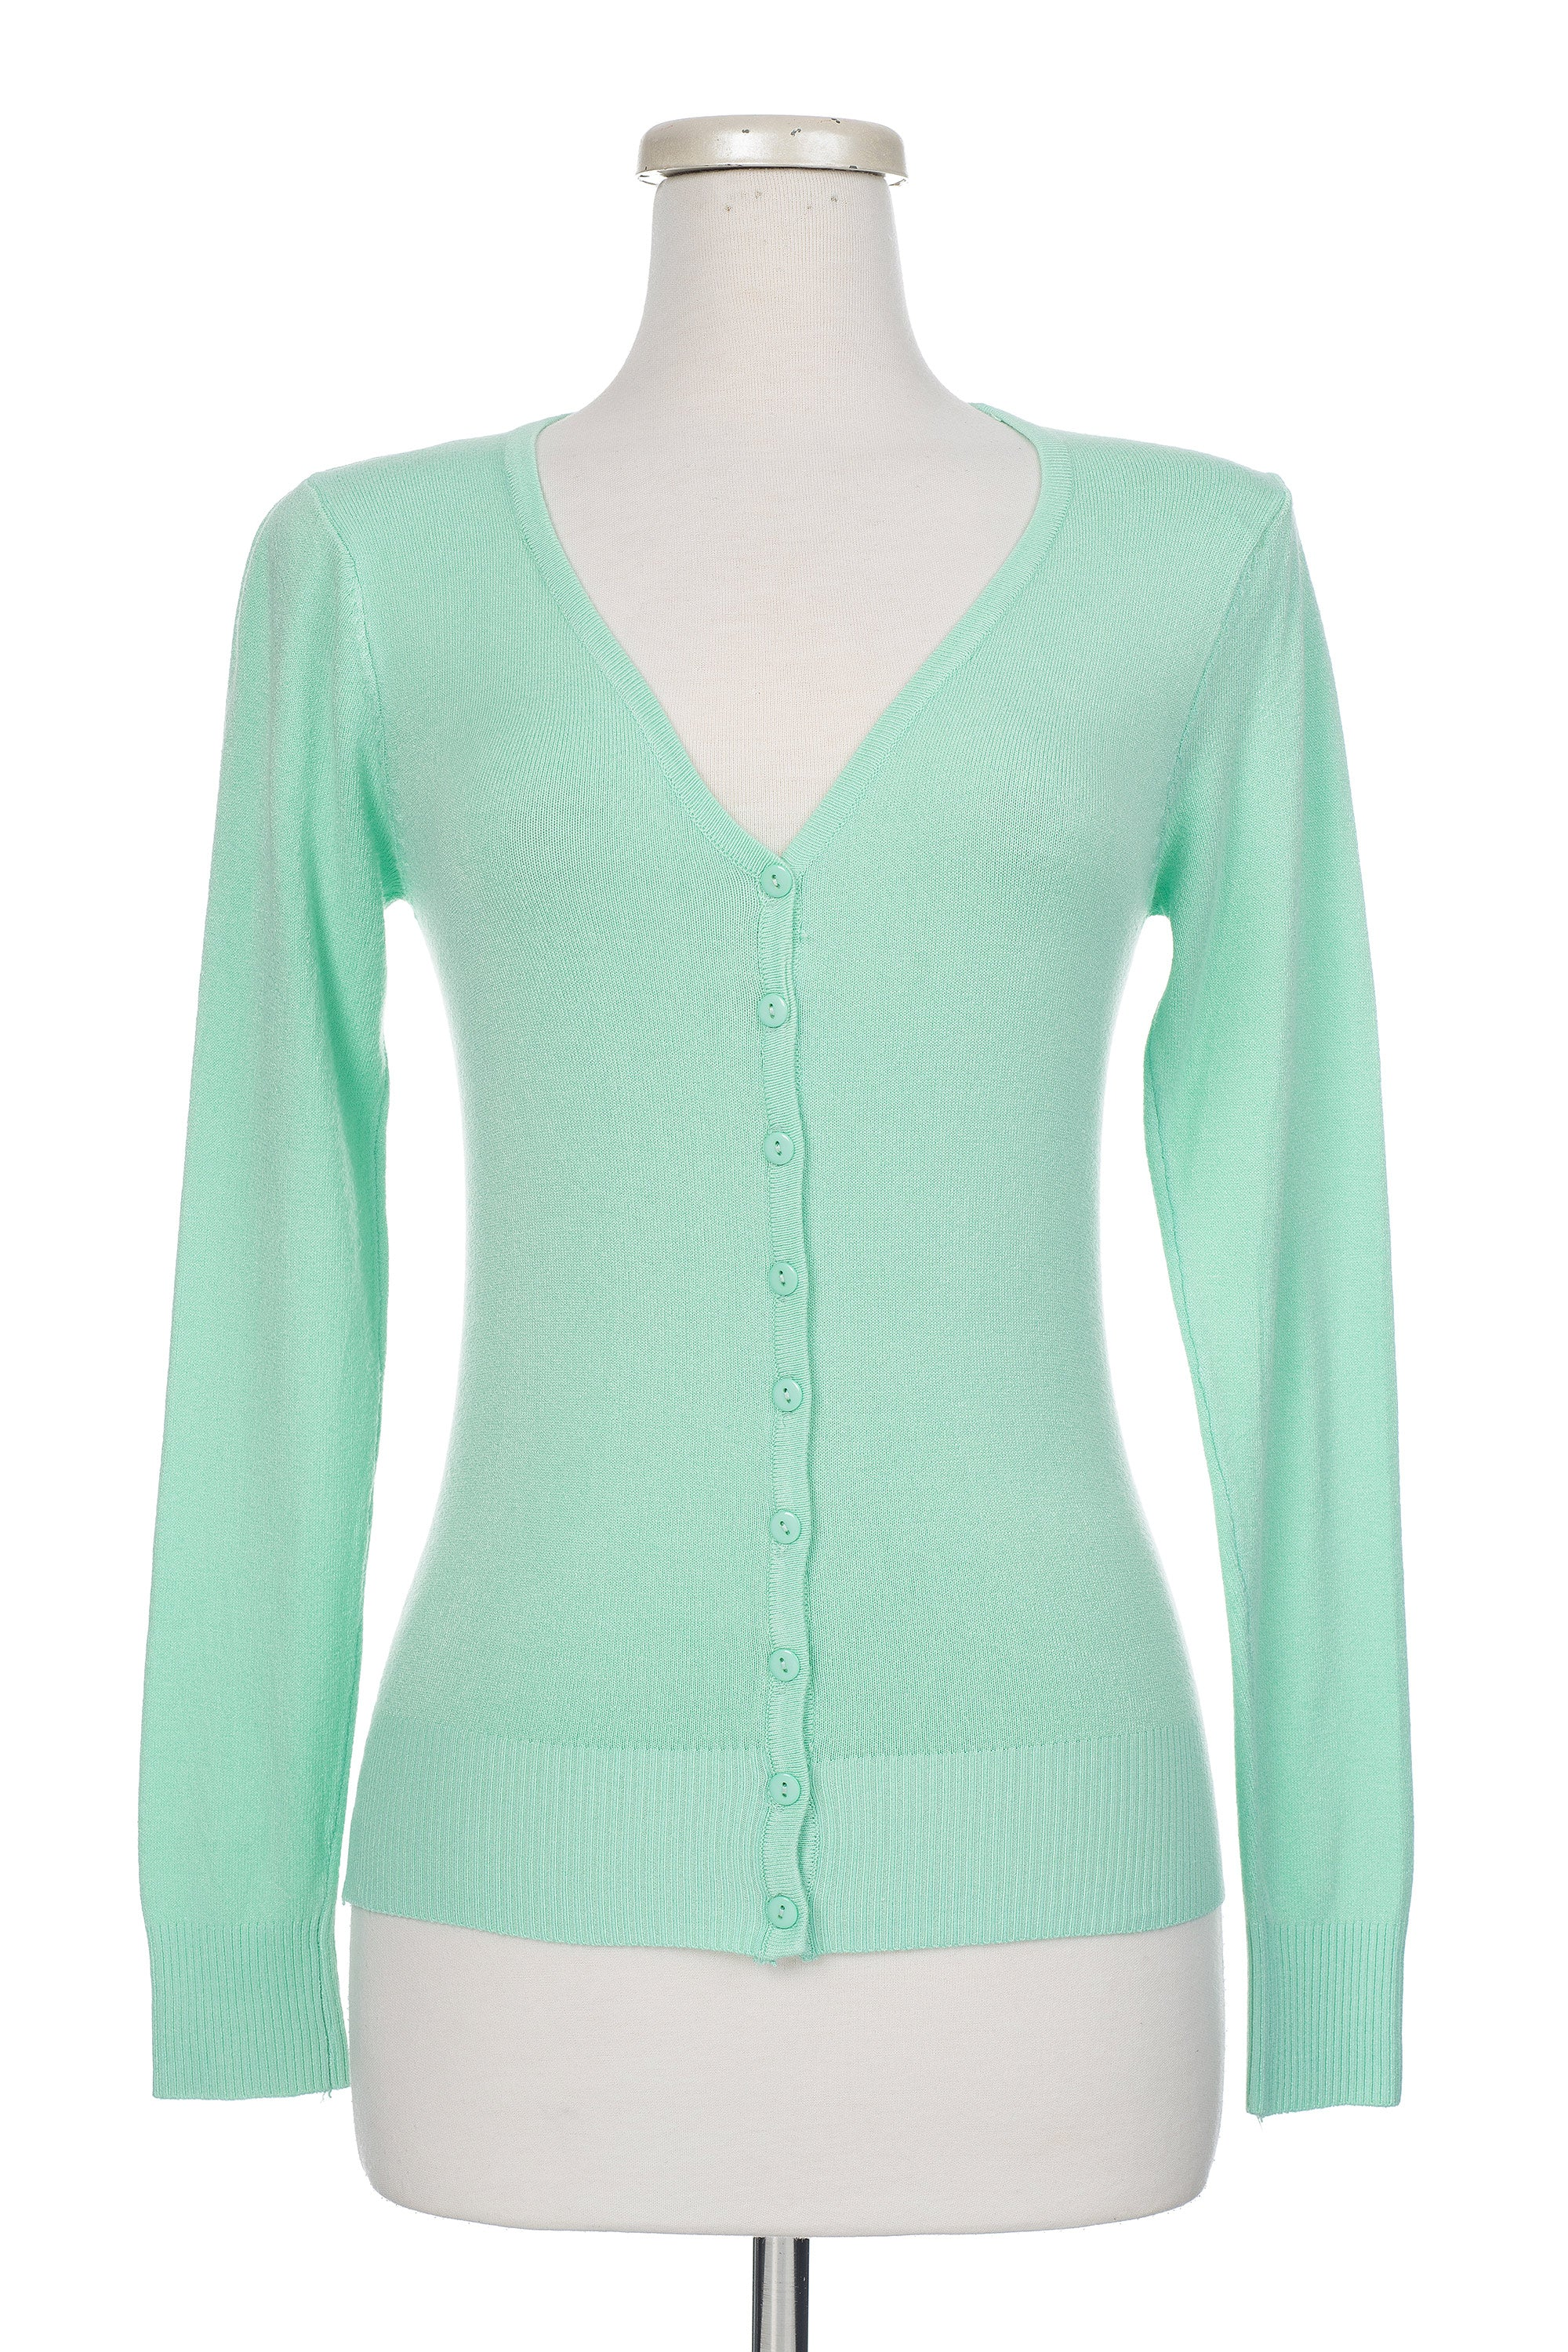 Type 1 Spearmint Cardigan